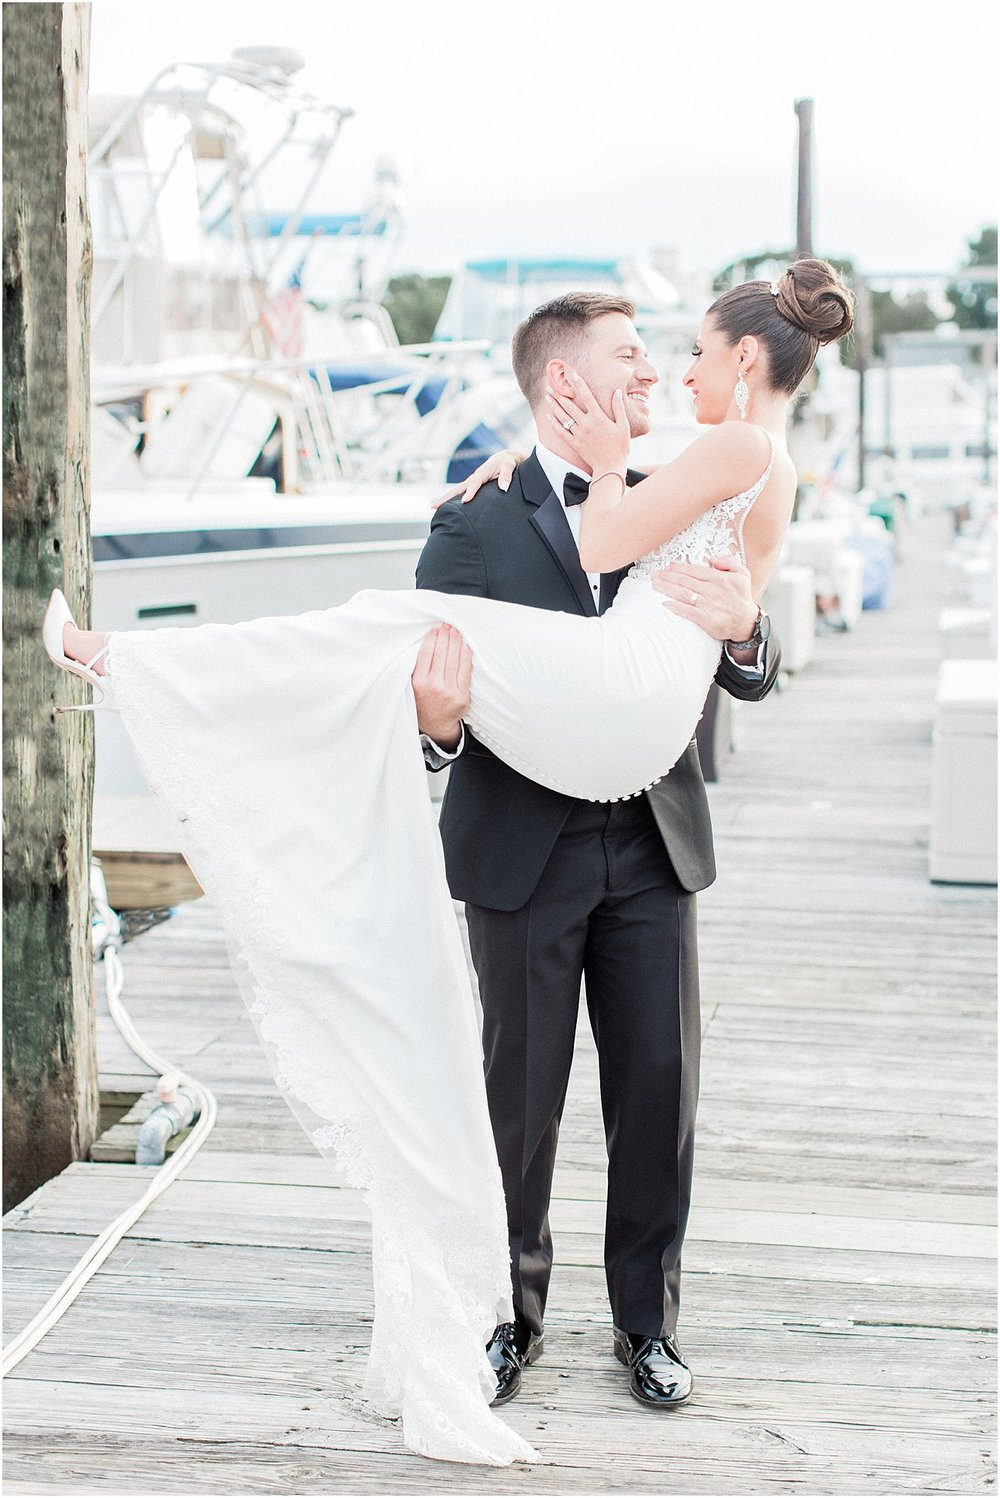 bianca_chris_danversport_italian_blush_gold_north_shore_cape_cod_boston_wedding_photographer_meredith_jane_photography_photo_1144.jpg